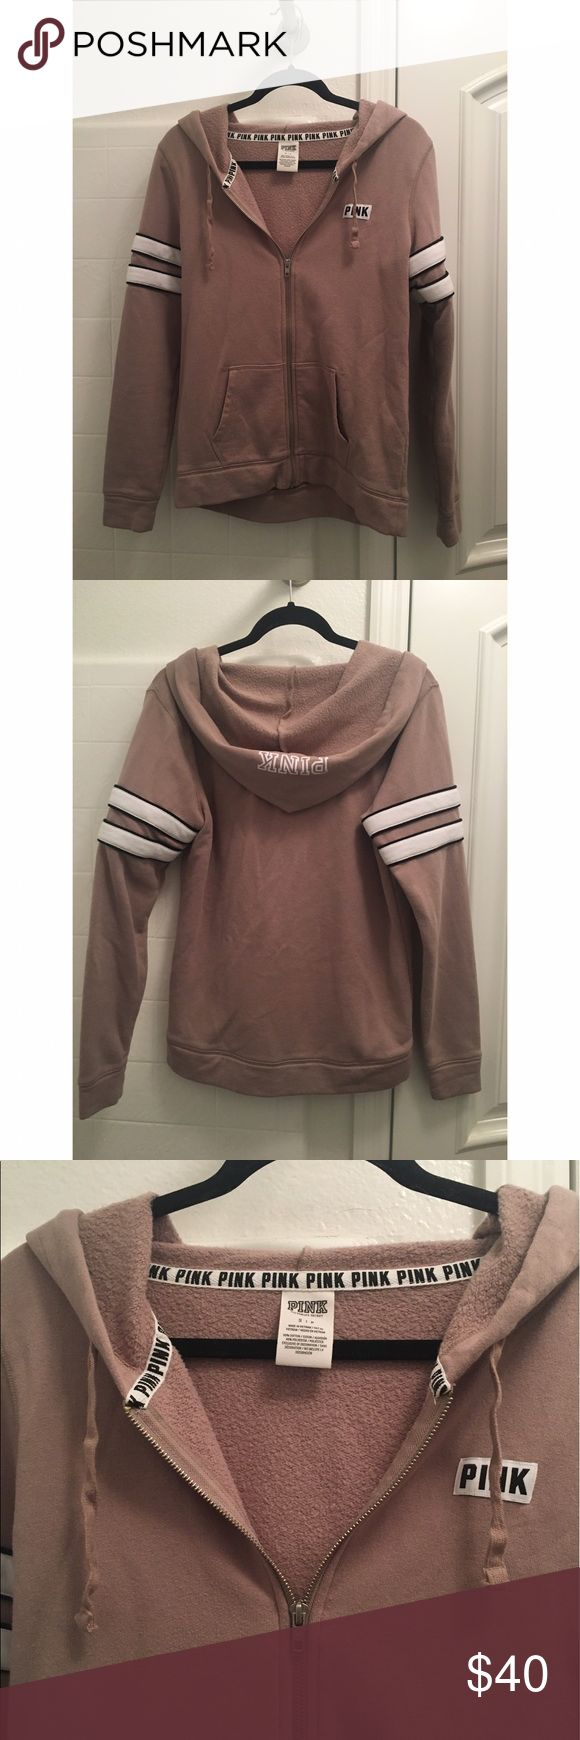 PINK Tan Zip Up Tan and white striped zip up hoodie from PINK. In brand new condition, worn only a handful of times. No pilling, stains, or rips. Cute tan color that goes with everything! Comfy soft lining as well. Has the PINK logo on the hood and two stripes on each arm. ***Size small, fits a bit oversized!*** NO TRADES. PINK Victoria's Secret Sweaters